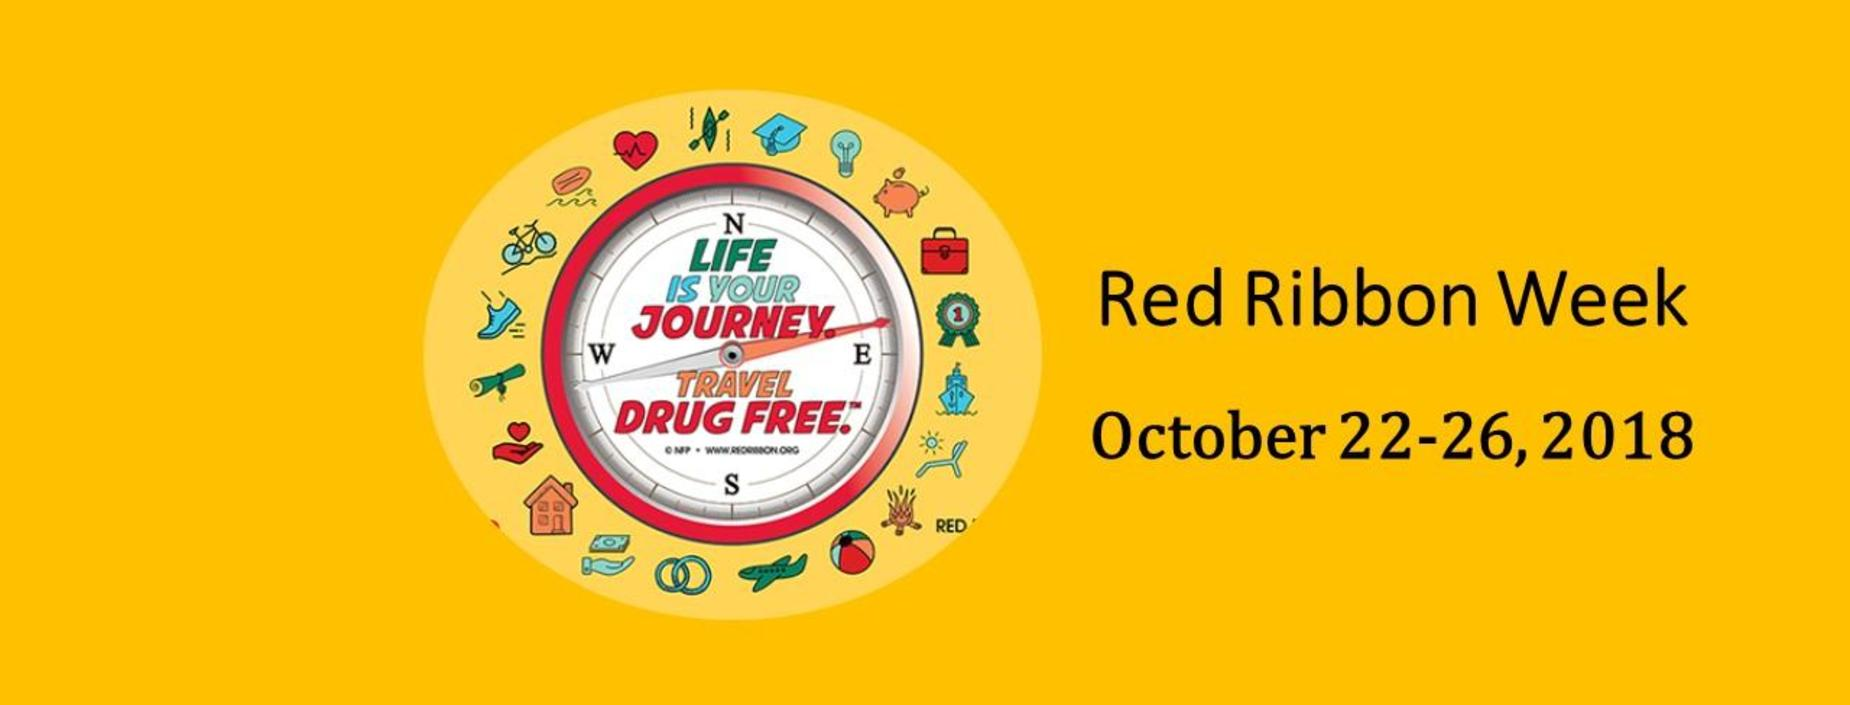 Red Ribbon Week banner